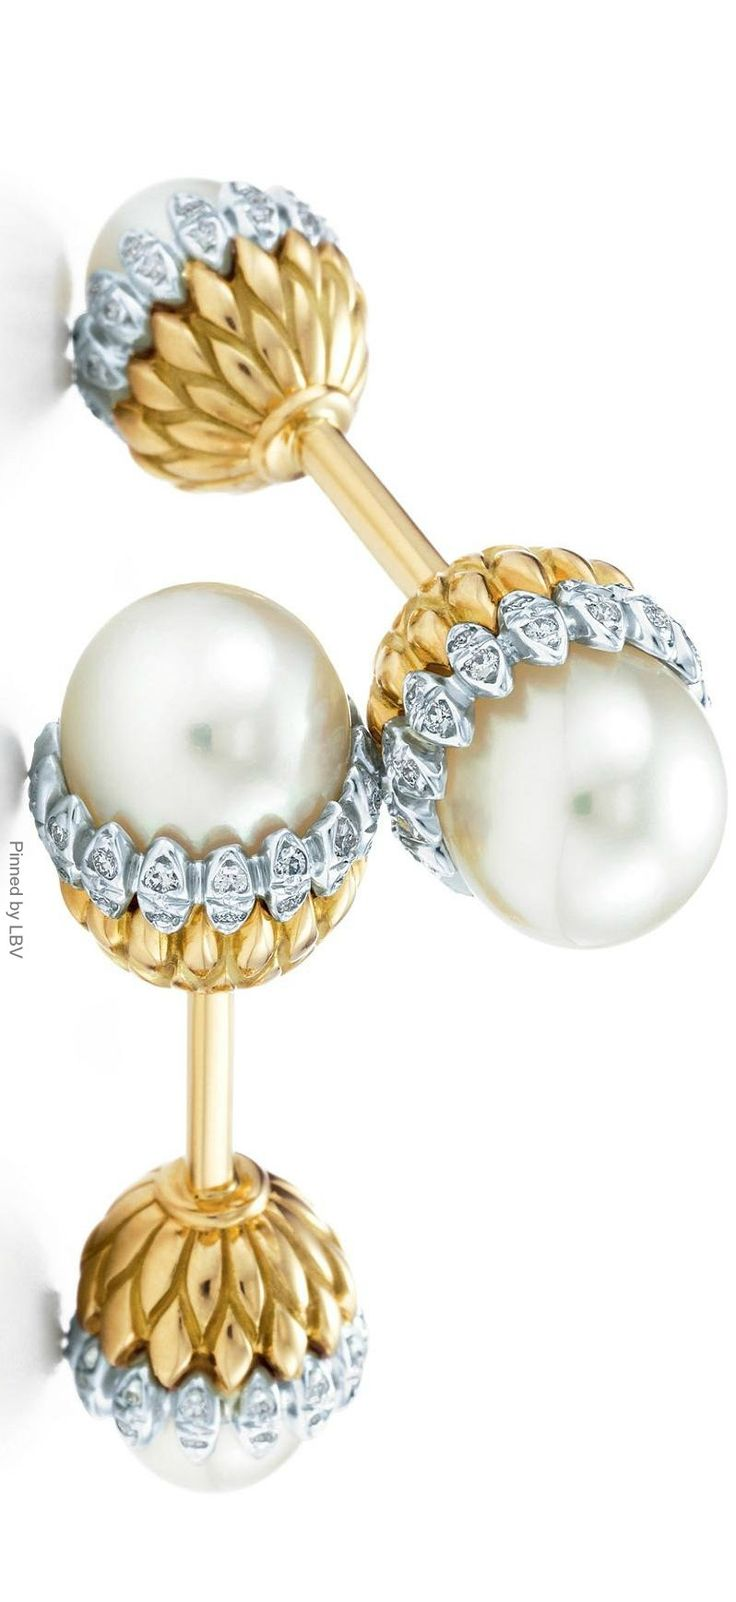 Acorn Cufflinks with Cultured Pearls and Diamonds set in 18k gold and platinum by Jean Schlumberger for Tiffany & Co | LBV ♥✤ | BeStayBeautiful